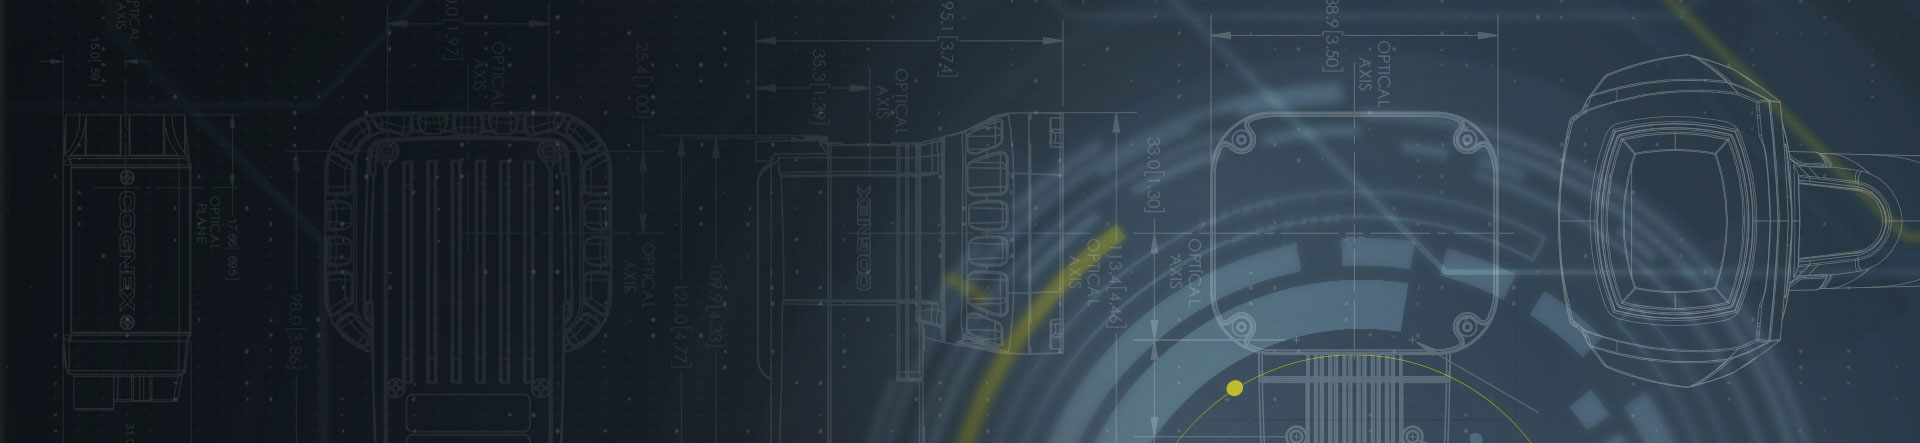 cognex product and lens blueprint banner